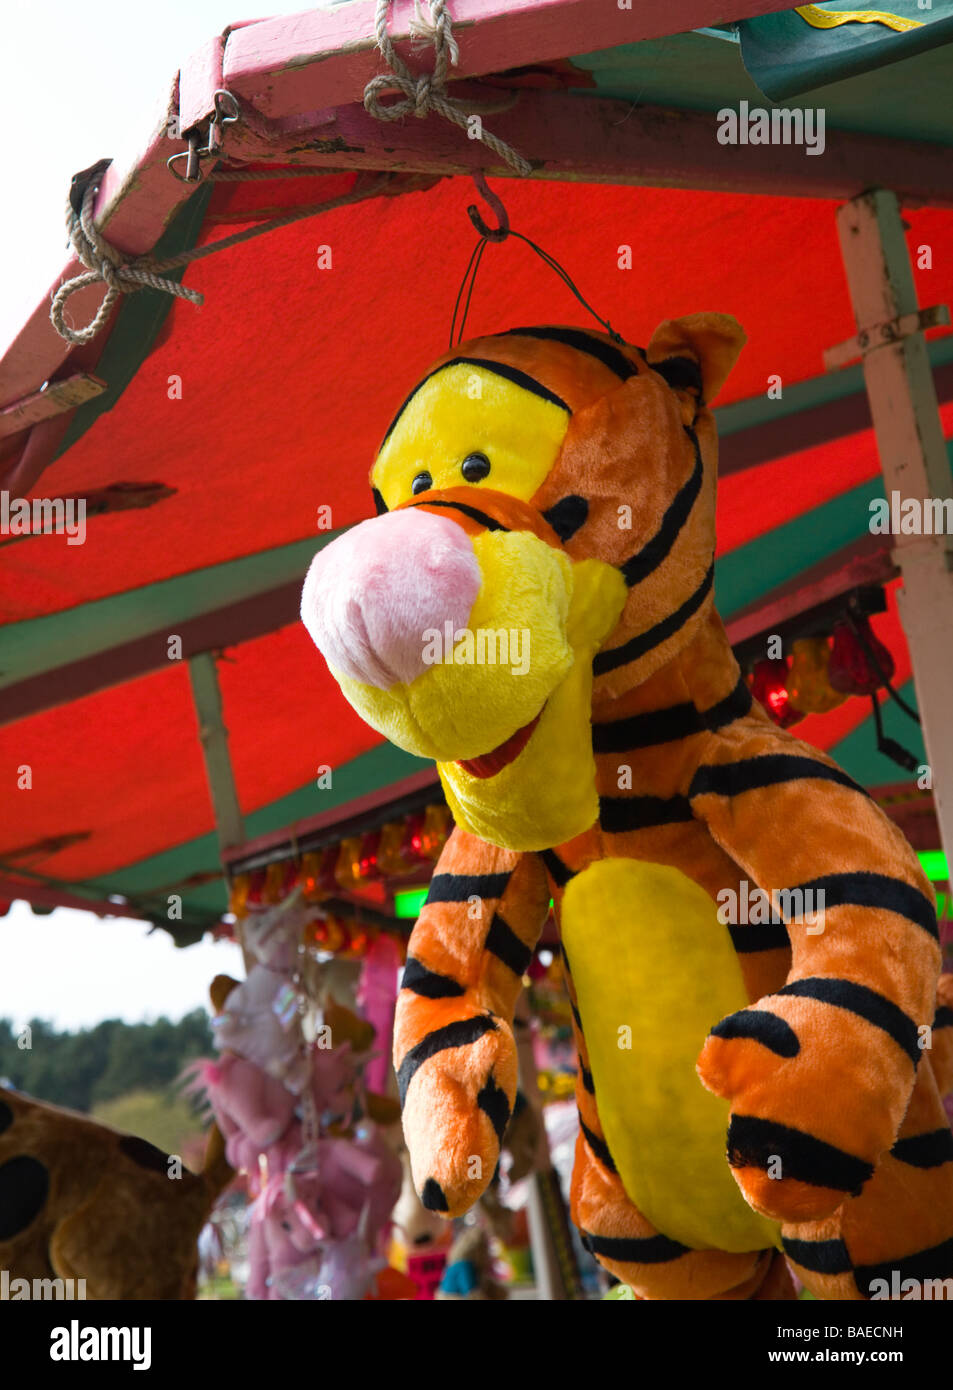 Disney 'Tigger'. A stuffed cuddly toy tiger, offered as a prize, hanging from a stall at a fairground. UK. - Stock Image